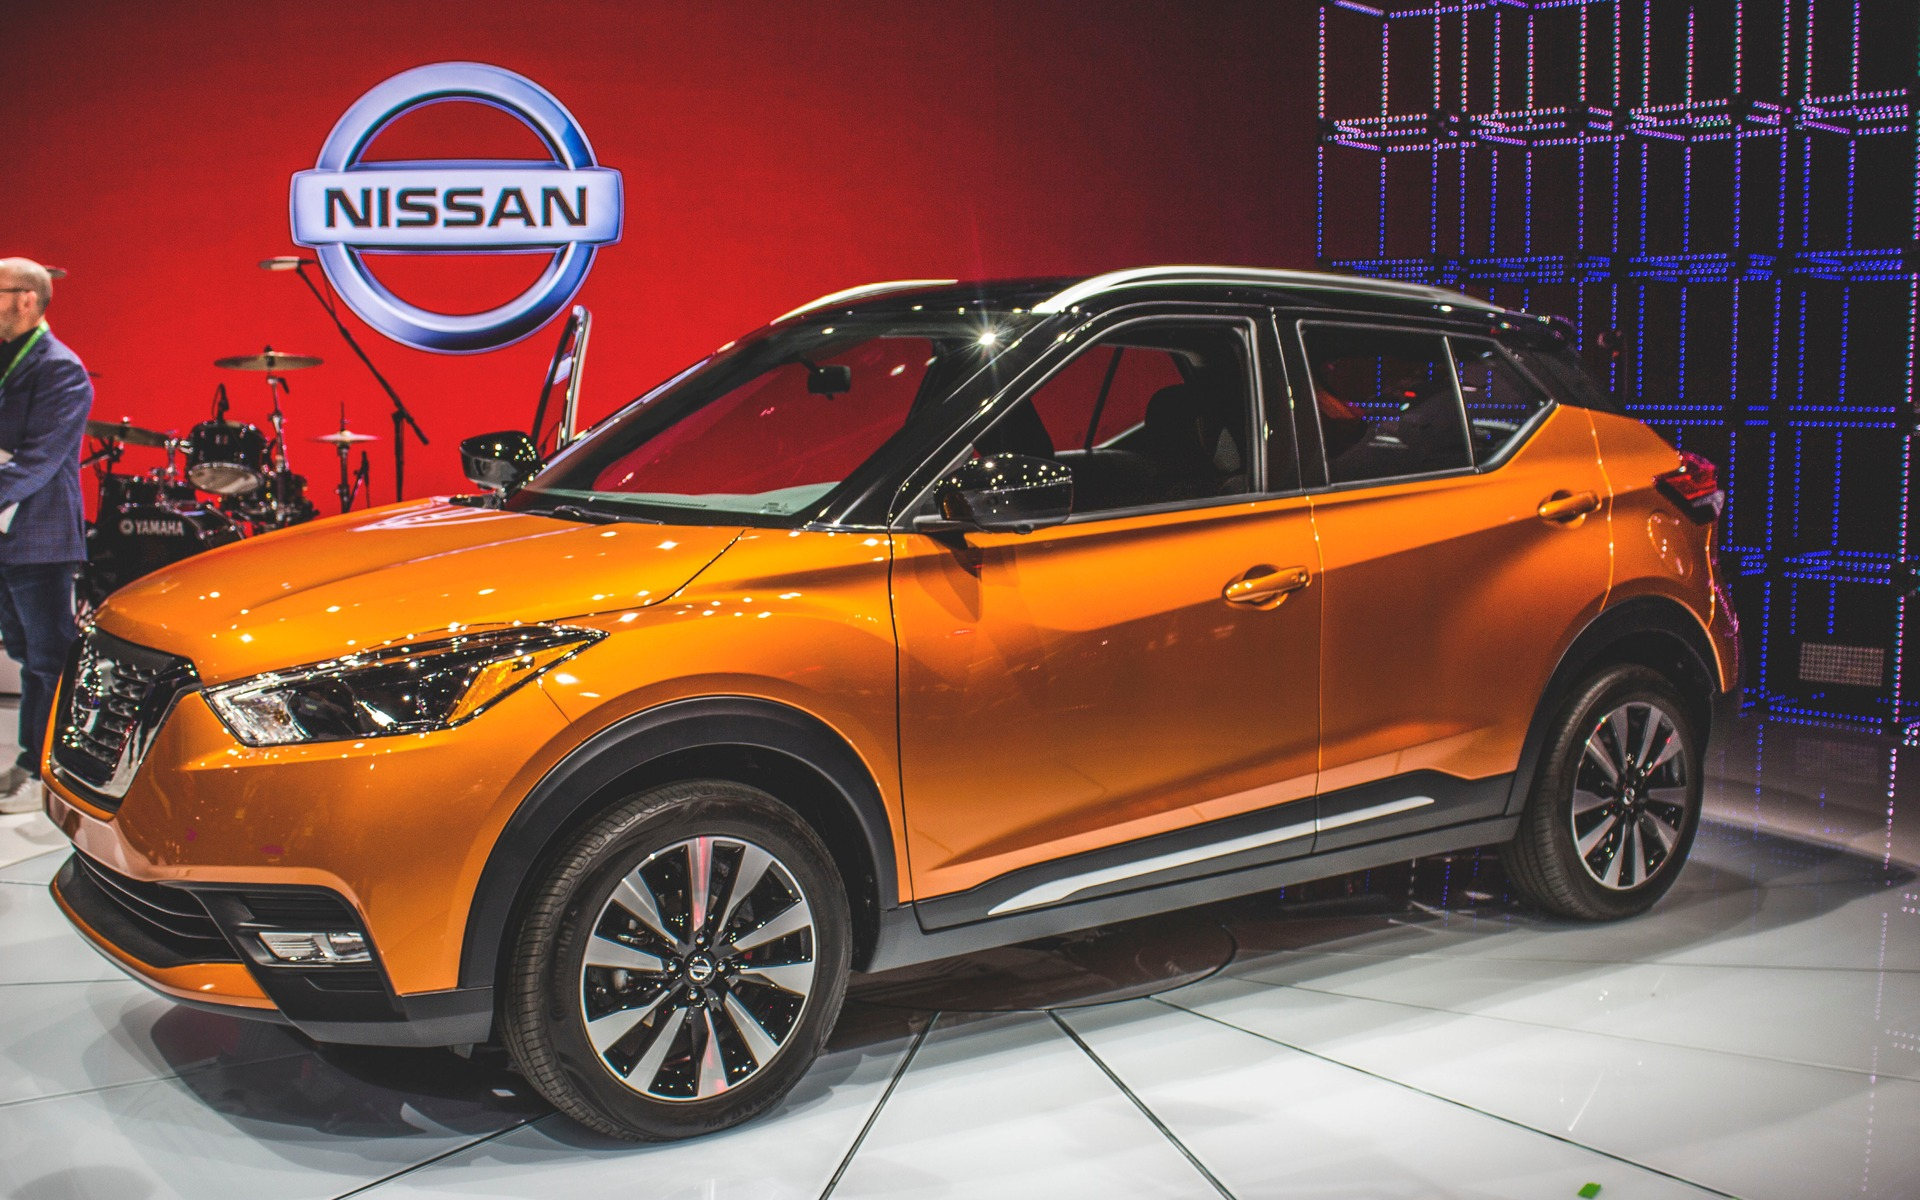 2018 Nissan Kicks: The New JUKE? - The Car Guide